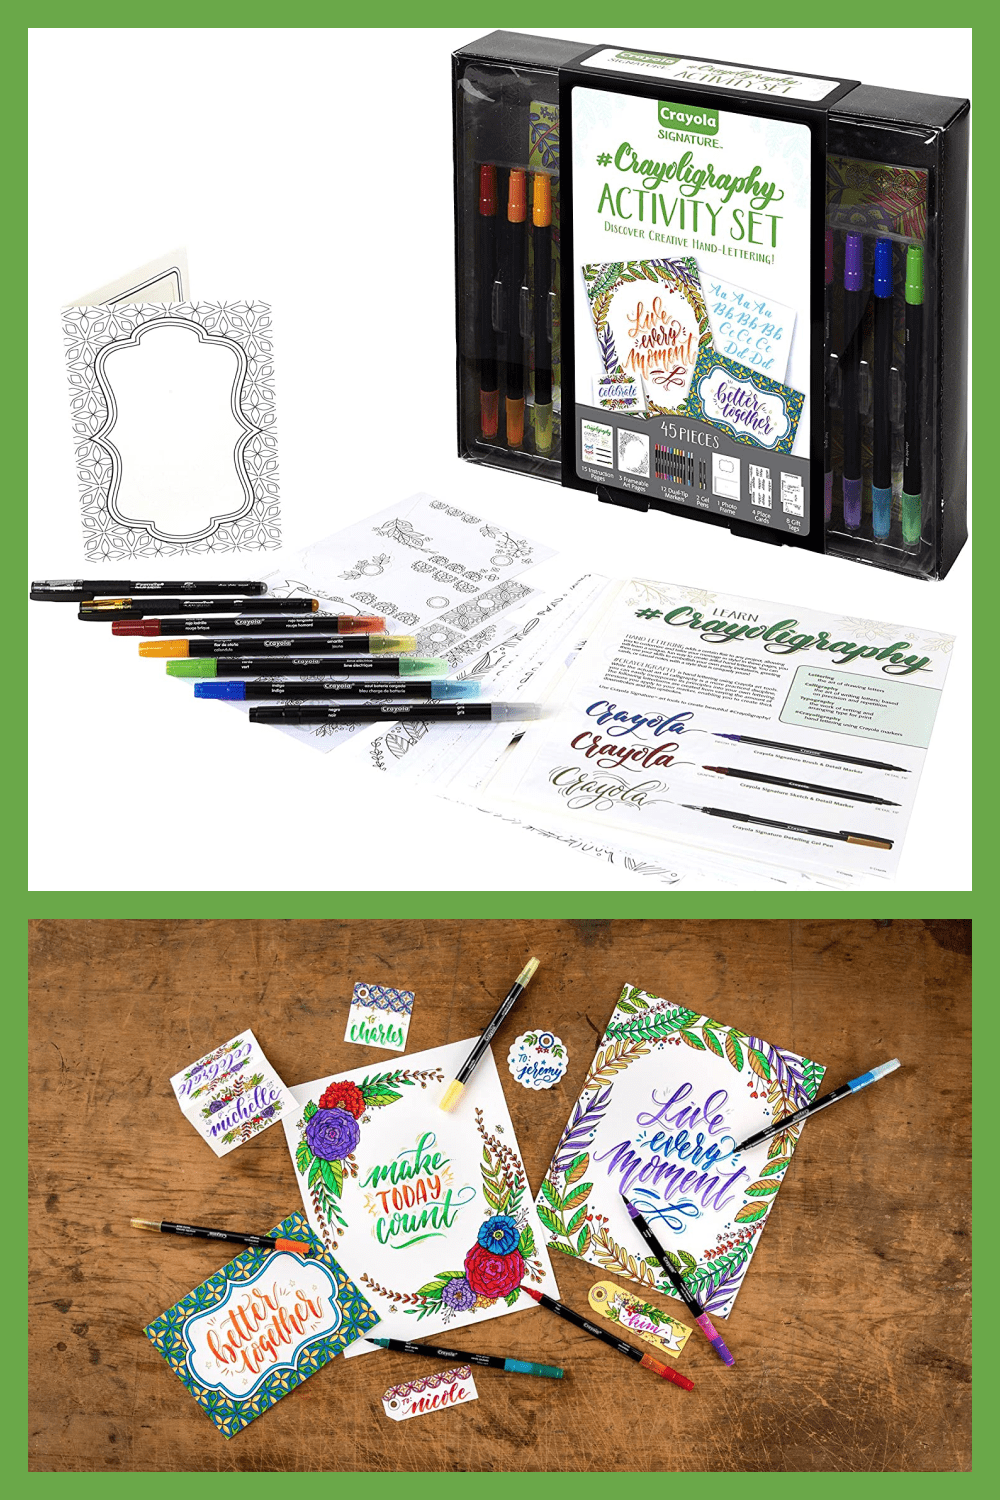 This kit includes everything you need to learn the art of hand-lettering, including intro and practice sheets, premium markers, and detailing gel pens.